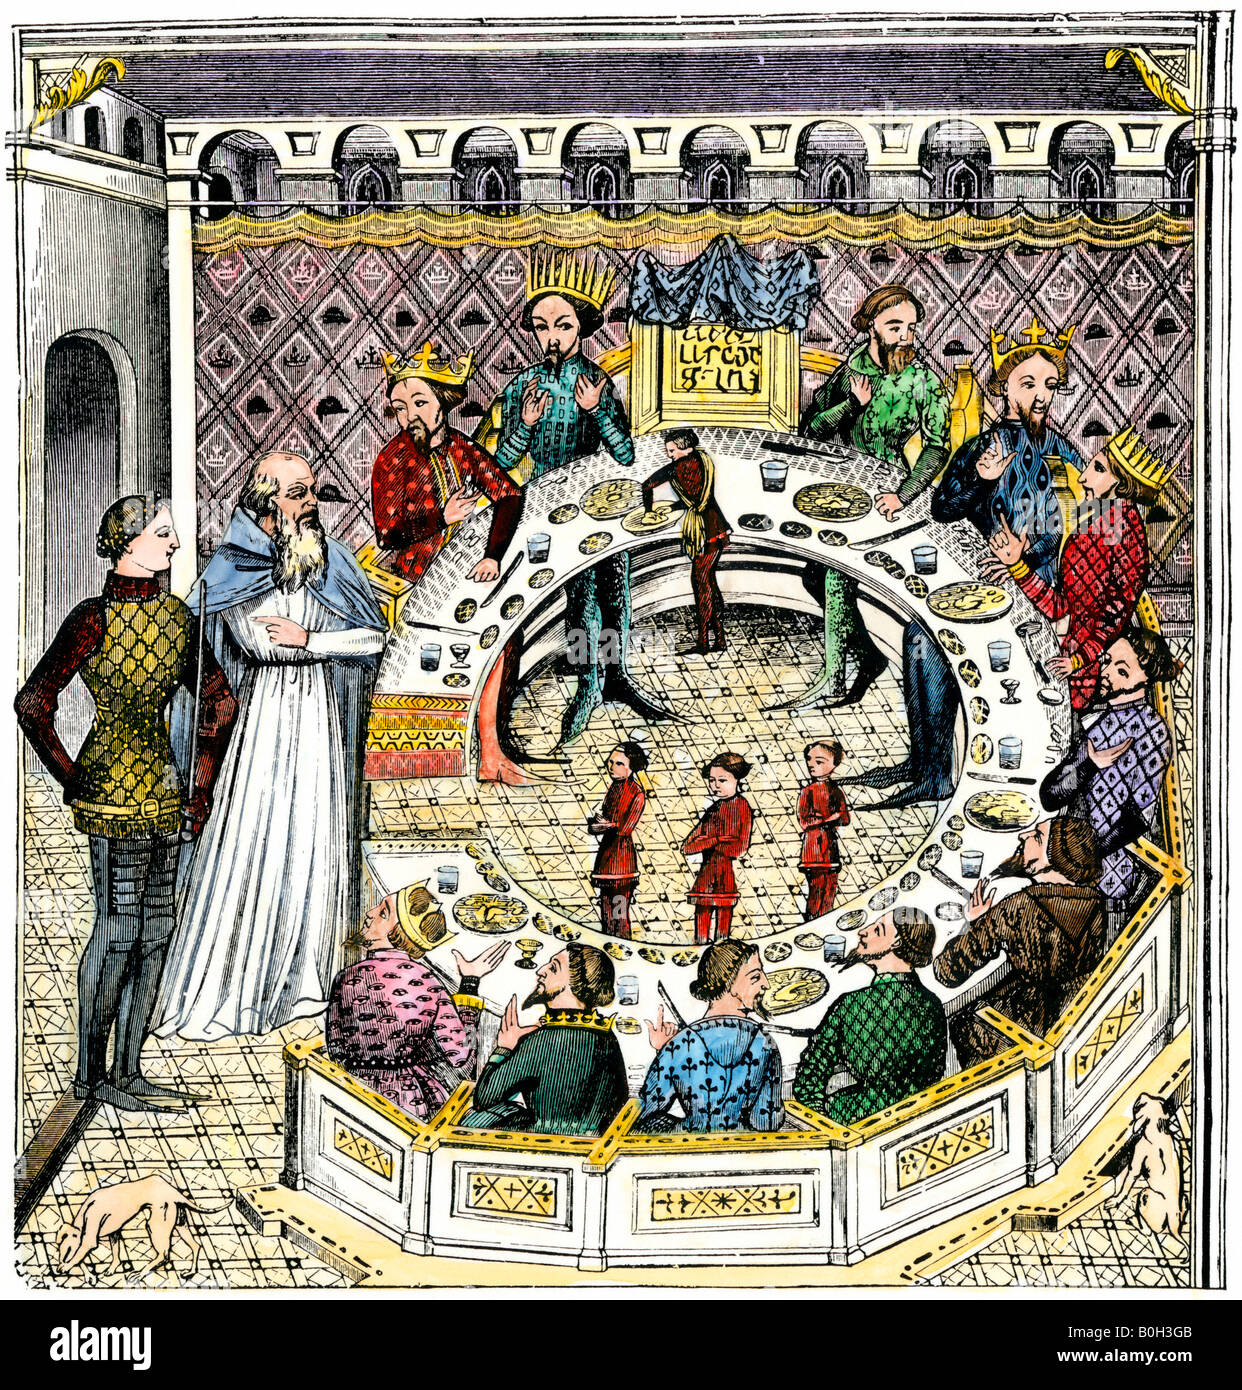 http://c8.alamy.com/comp/B0H3GB/round-table-of-king-artus-of-brittany-B0H3GB.jpg